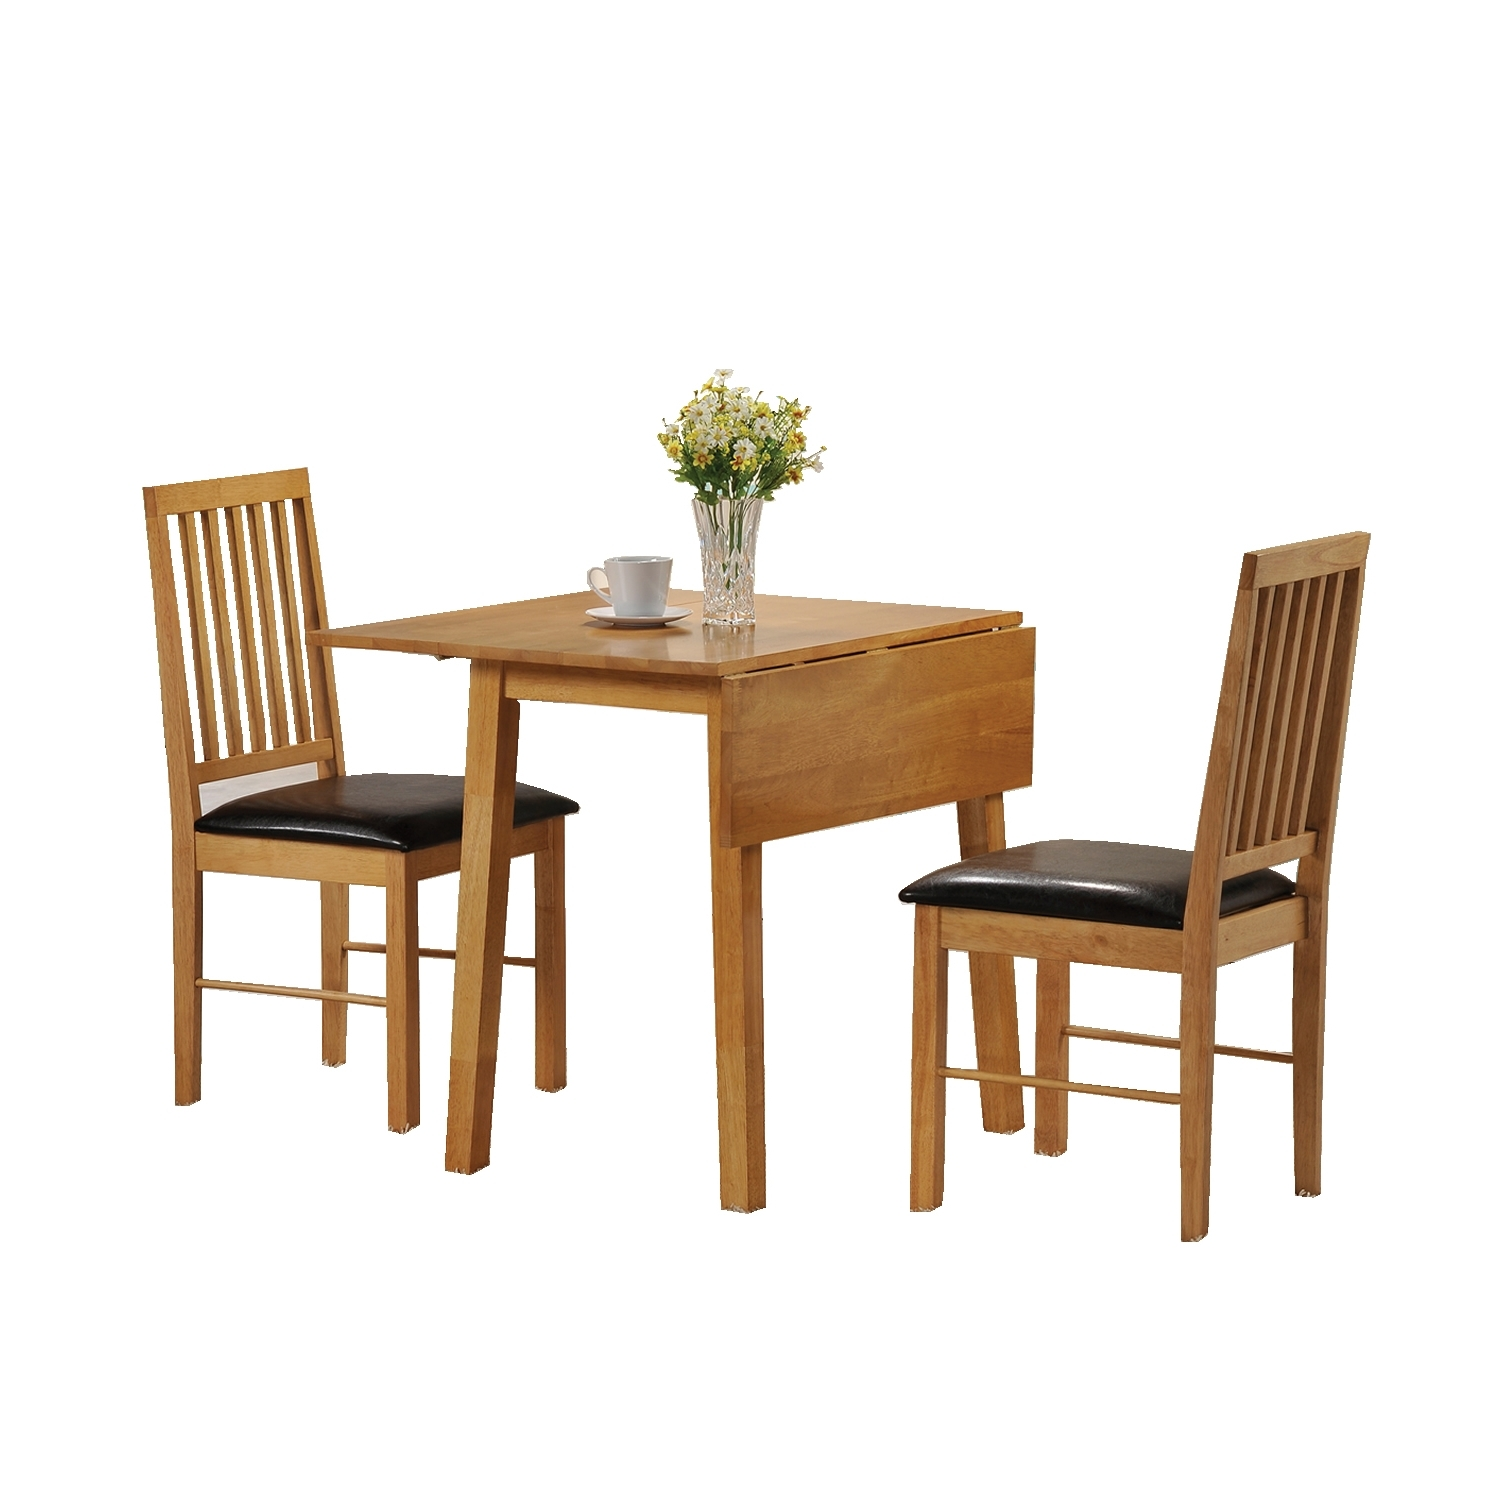 Latest Small 4 Seater Dining Tables Inside Dining Table And 2 Chairs Set 2 Seater Drop Leaf Set, Small Dining (View 11 of 25)